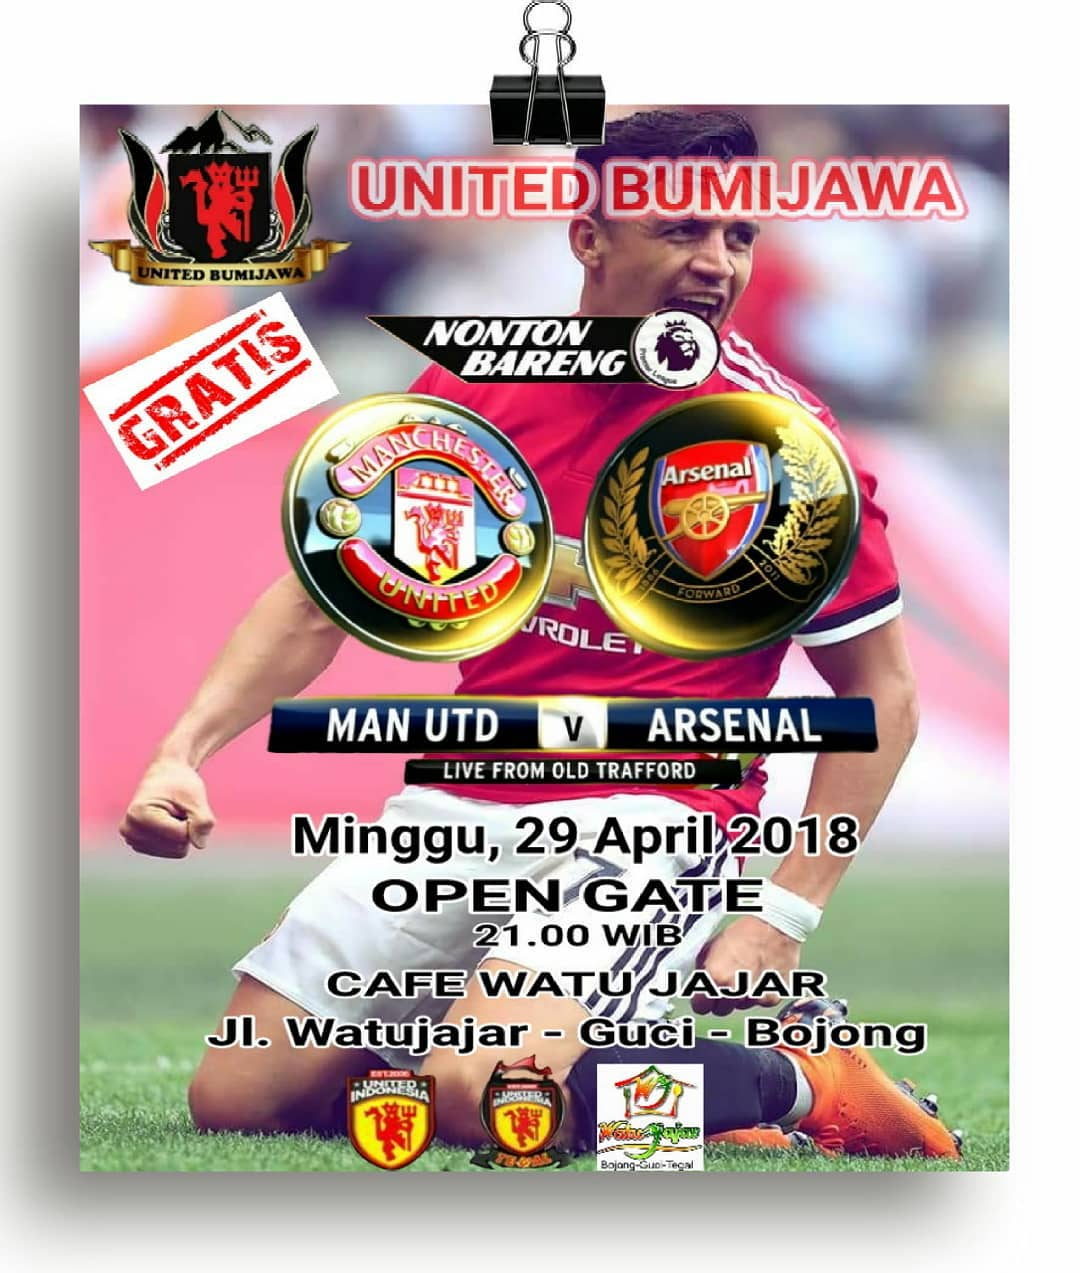 EVENT TEGAL - NOBAR MANCHESTER UNITED VS ARSENAL